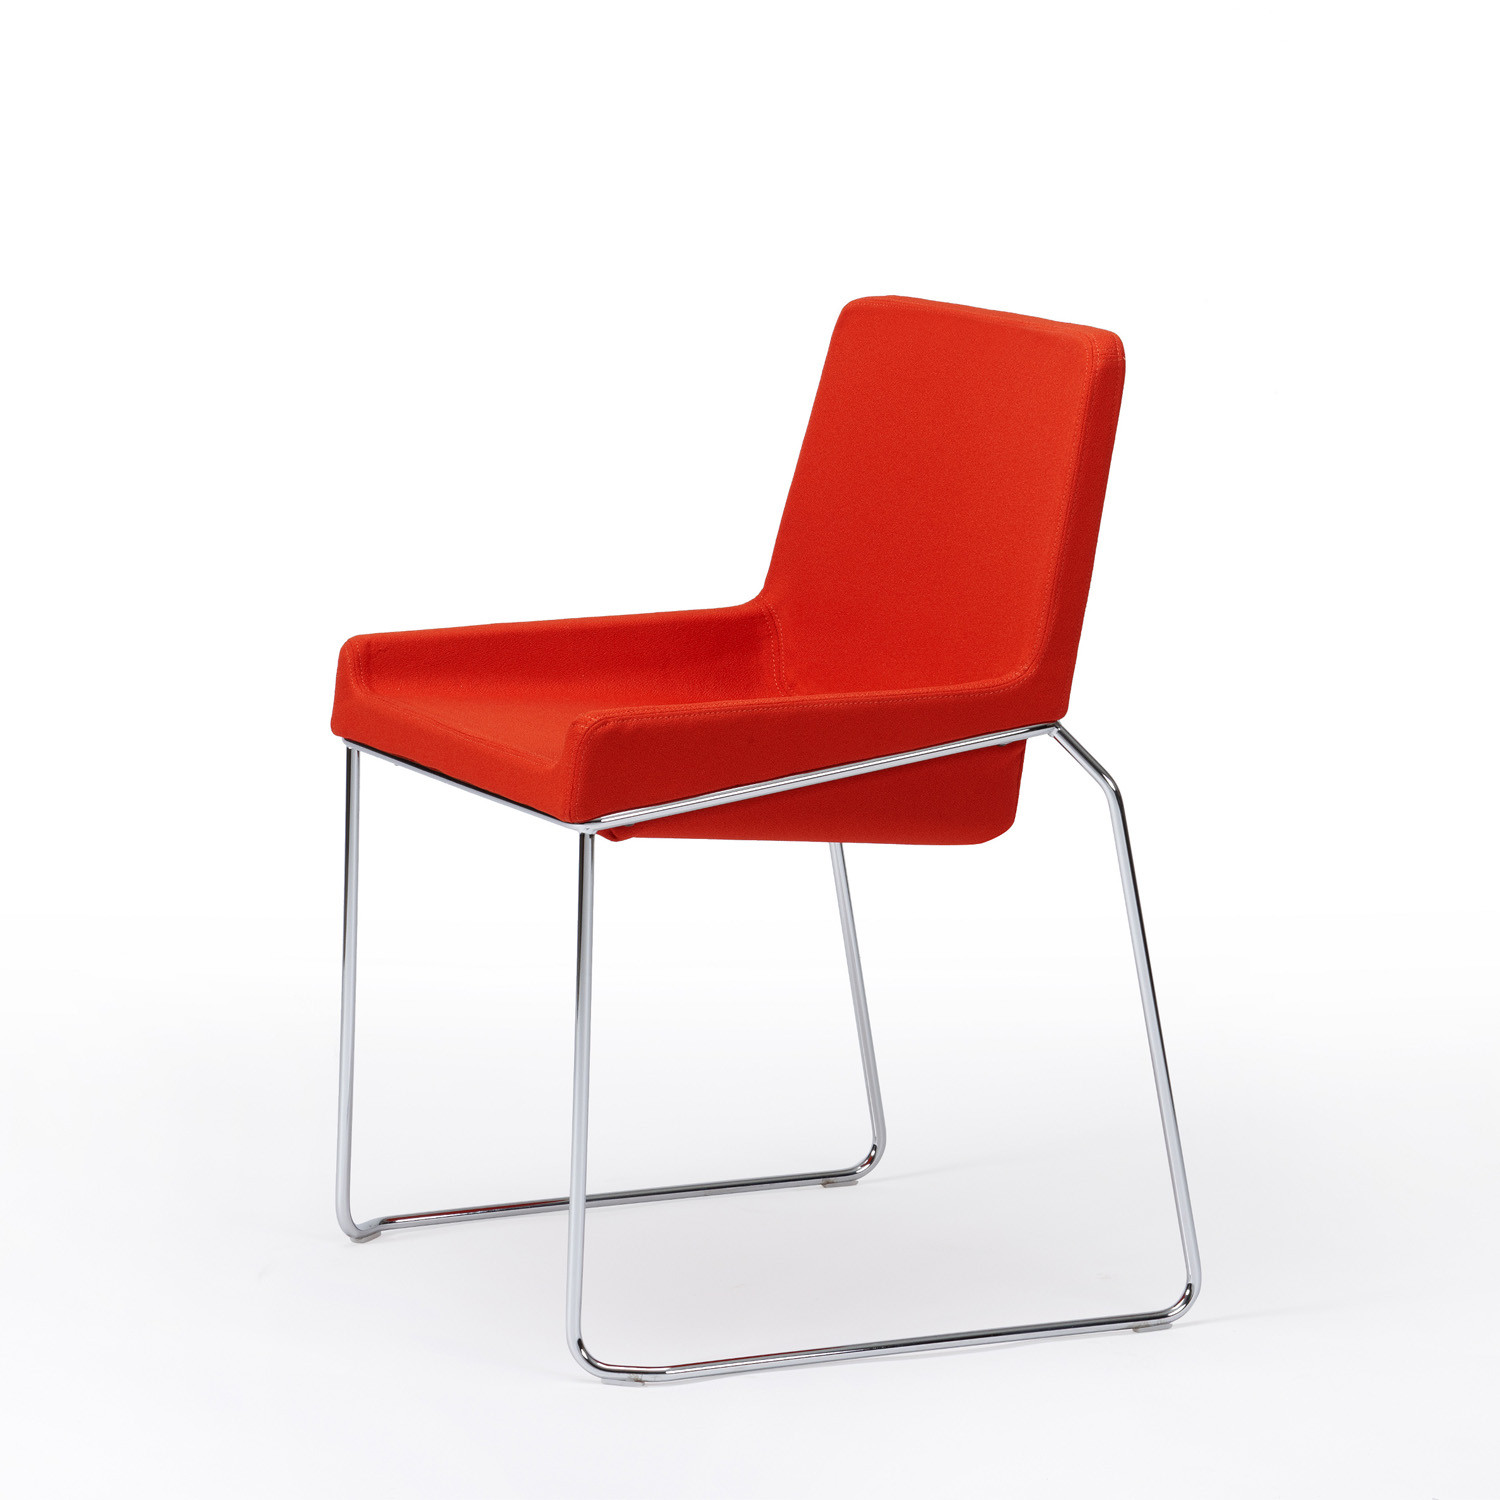 Tonic Chairs by Rossin